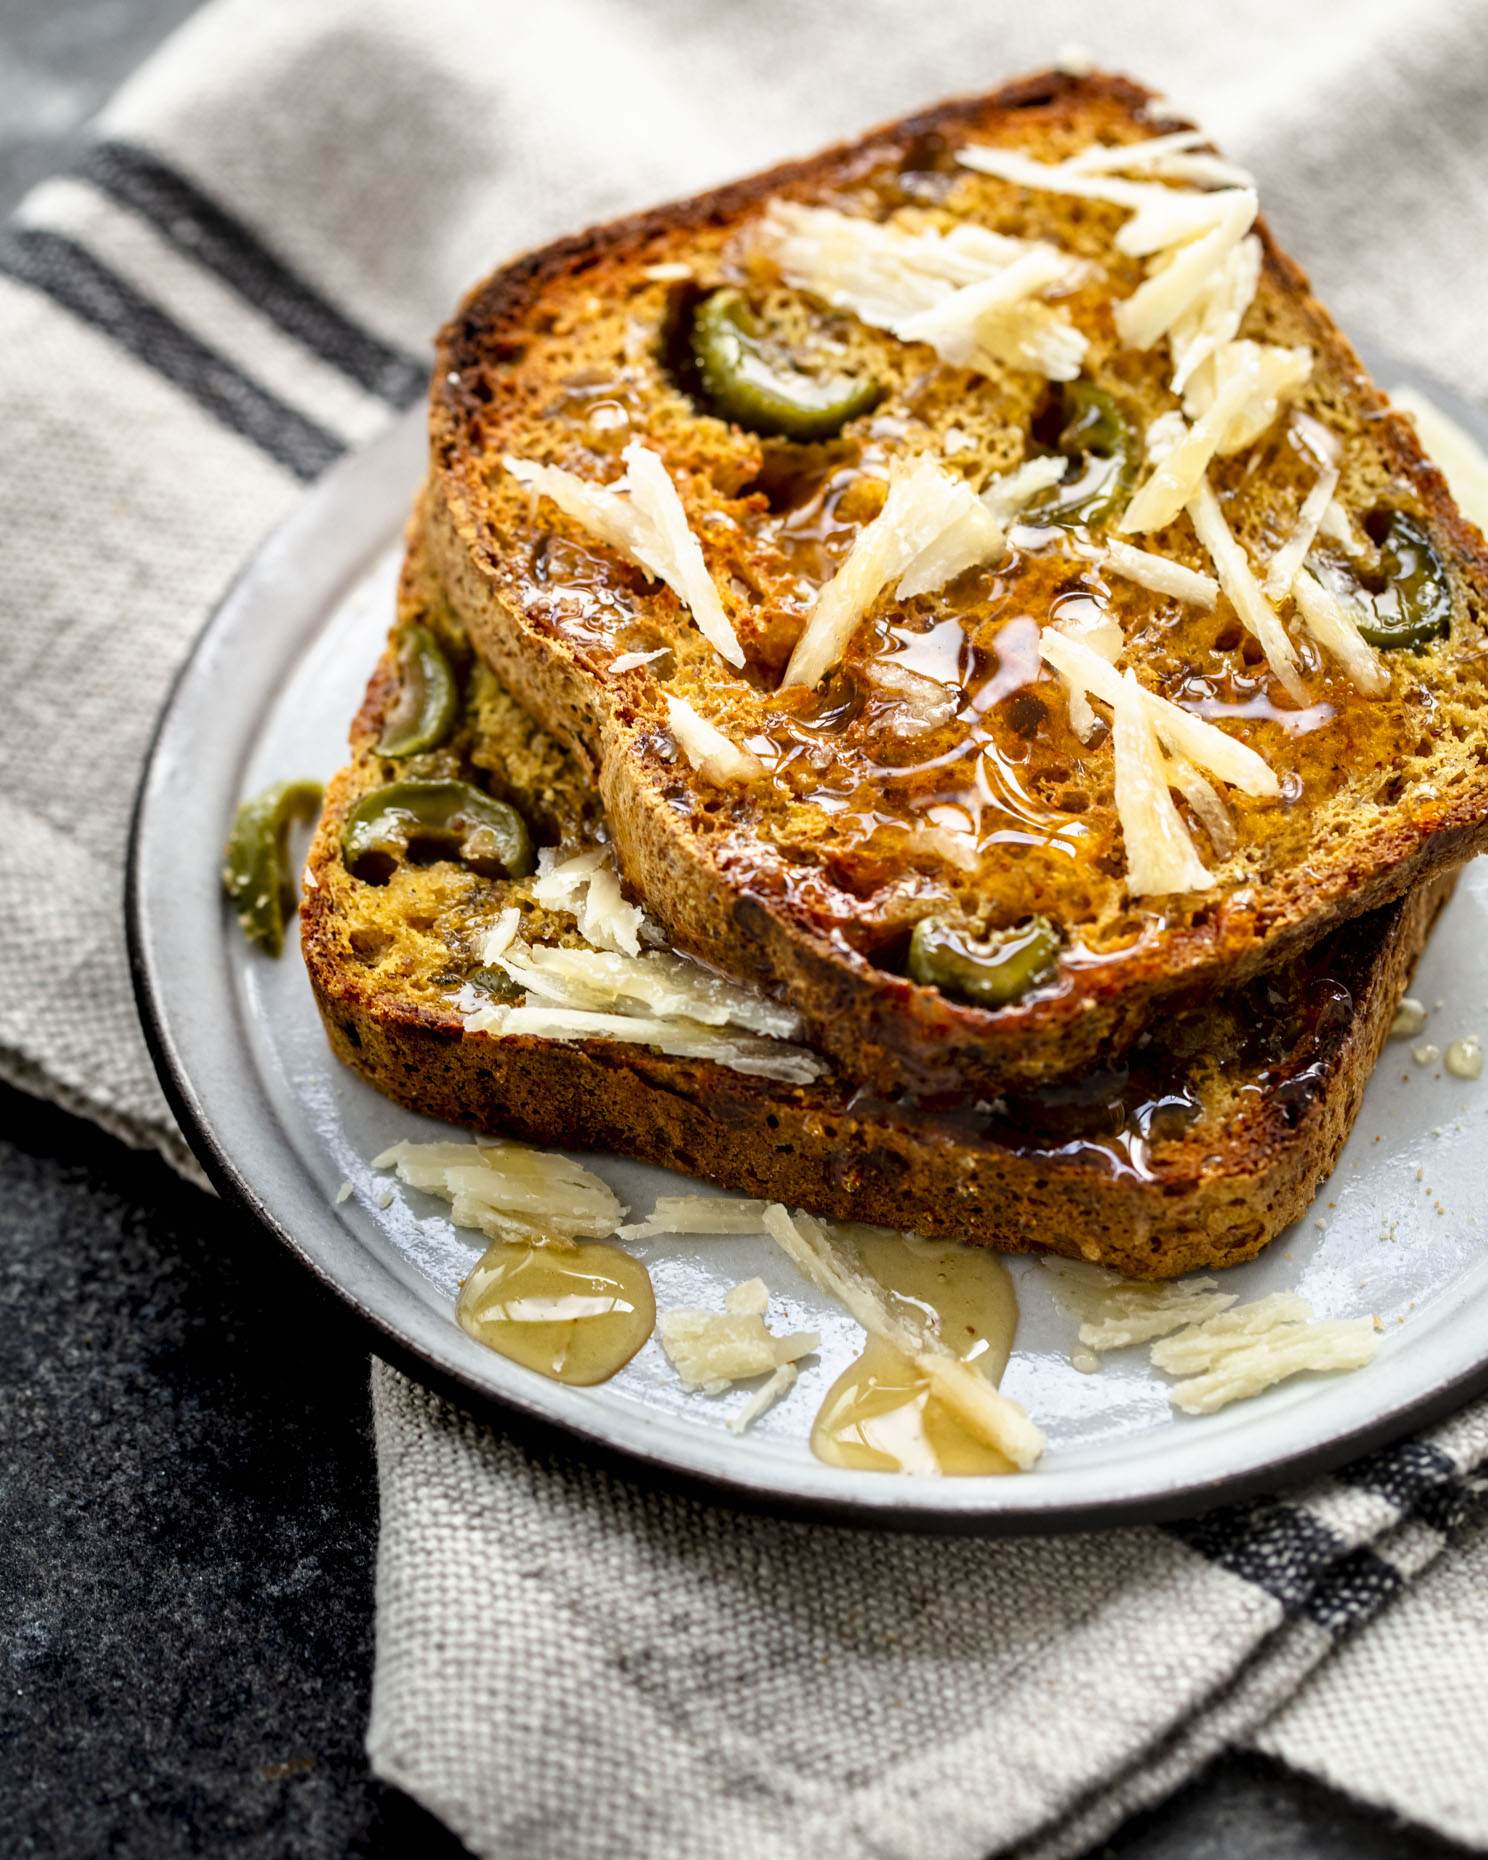 larsen_pumpkin_bread_olives_parm_rosemary_0120